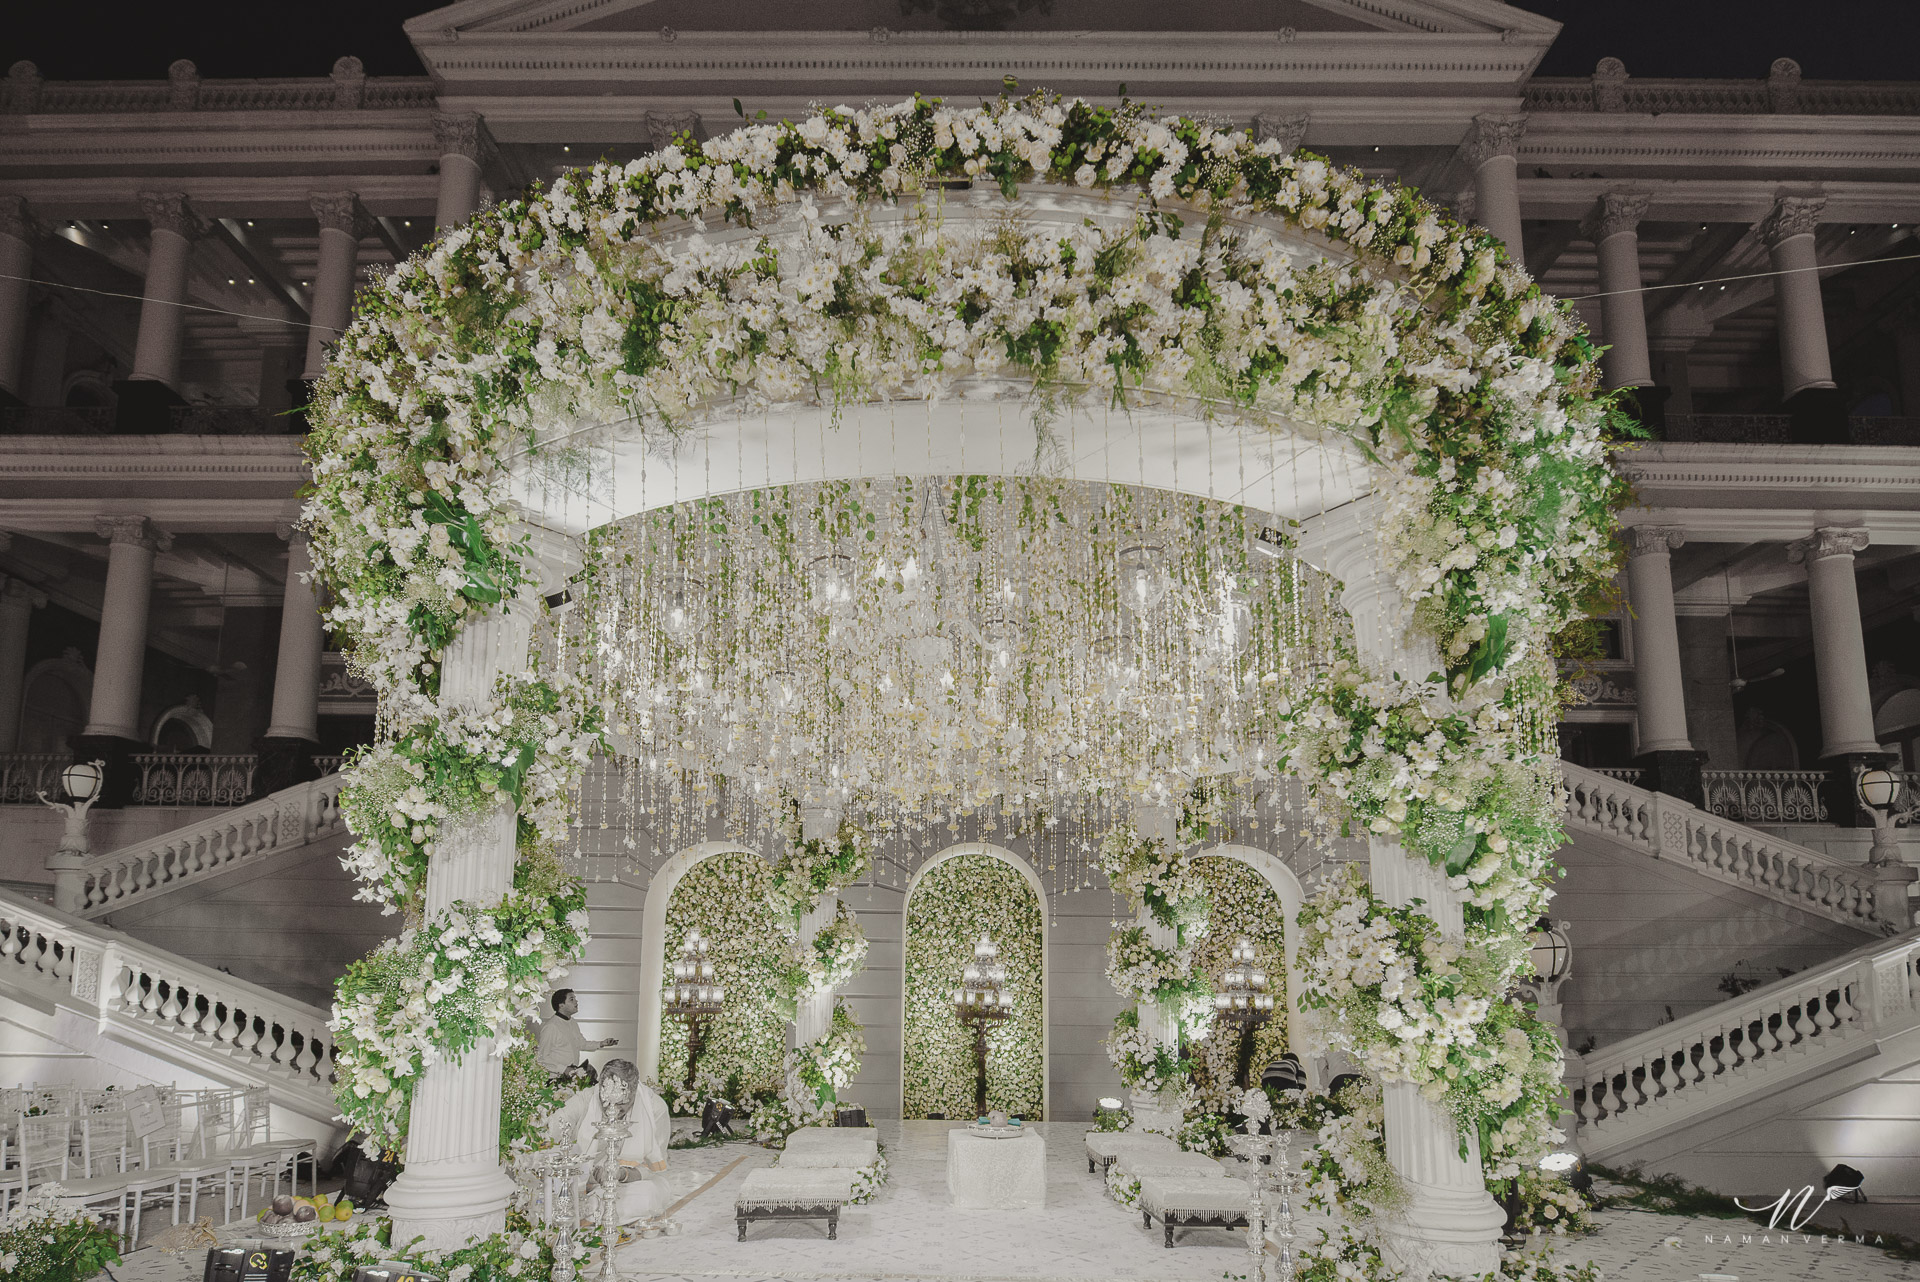 crystal wedding mandap decoration with white flowers and greenery